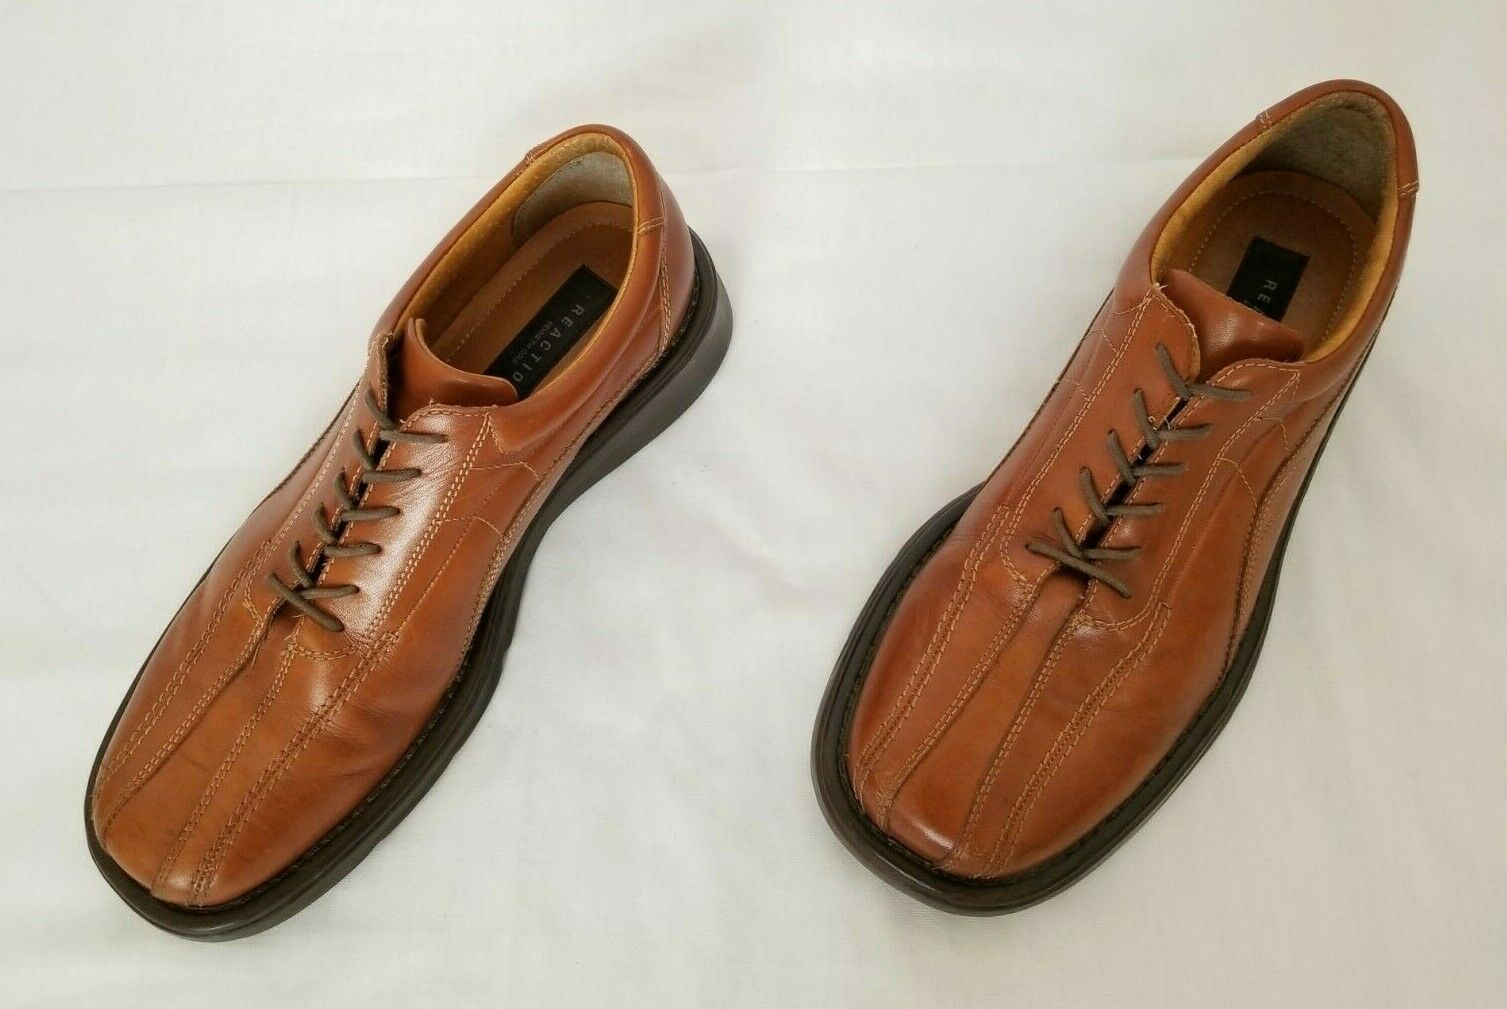 Mens Size 10 Brown Kenneth Cole Reaction Dress Leather Shoes Q20163 preowned